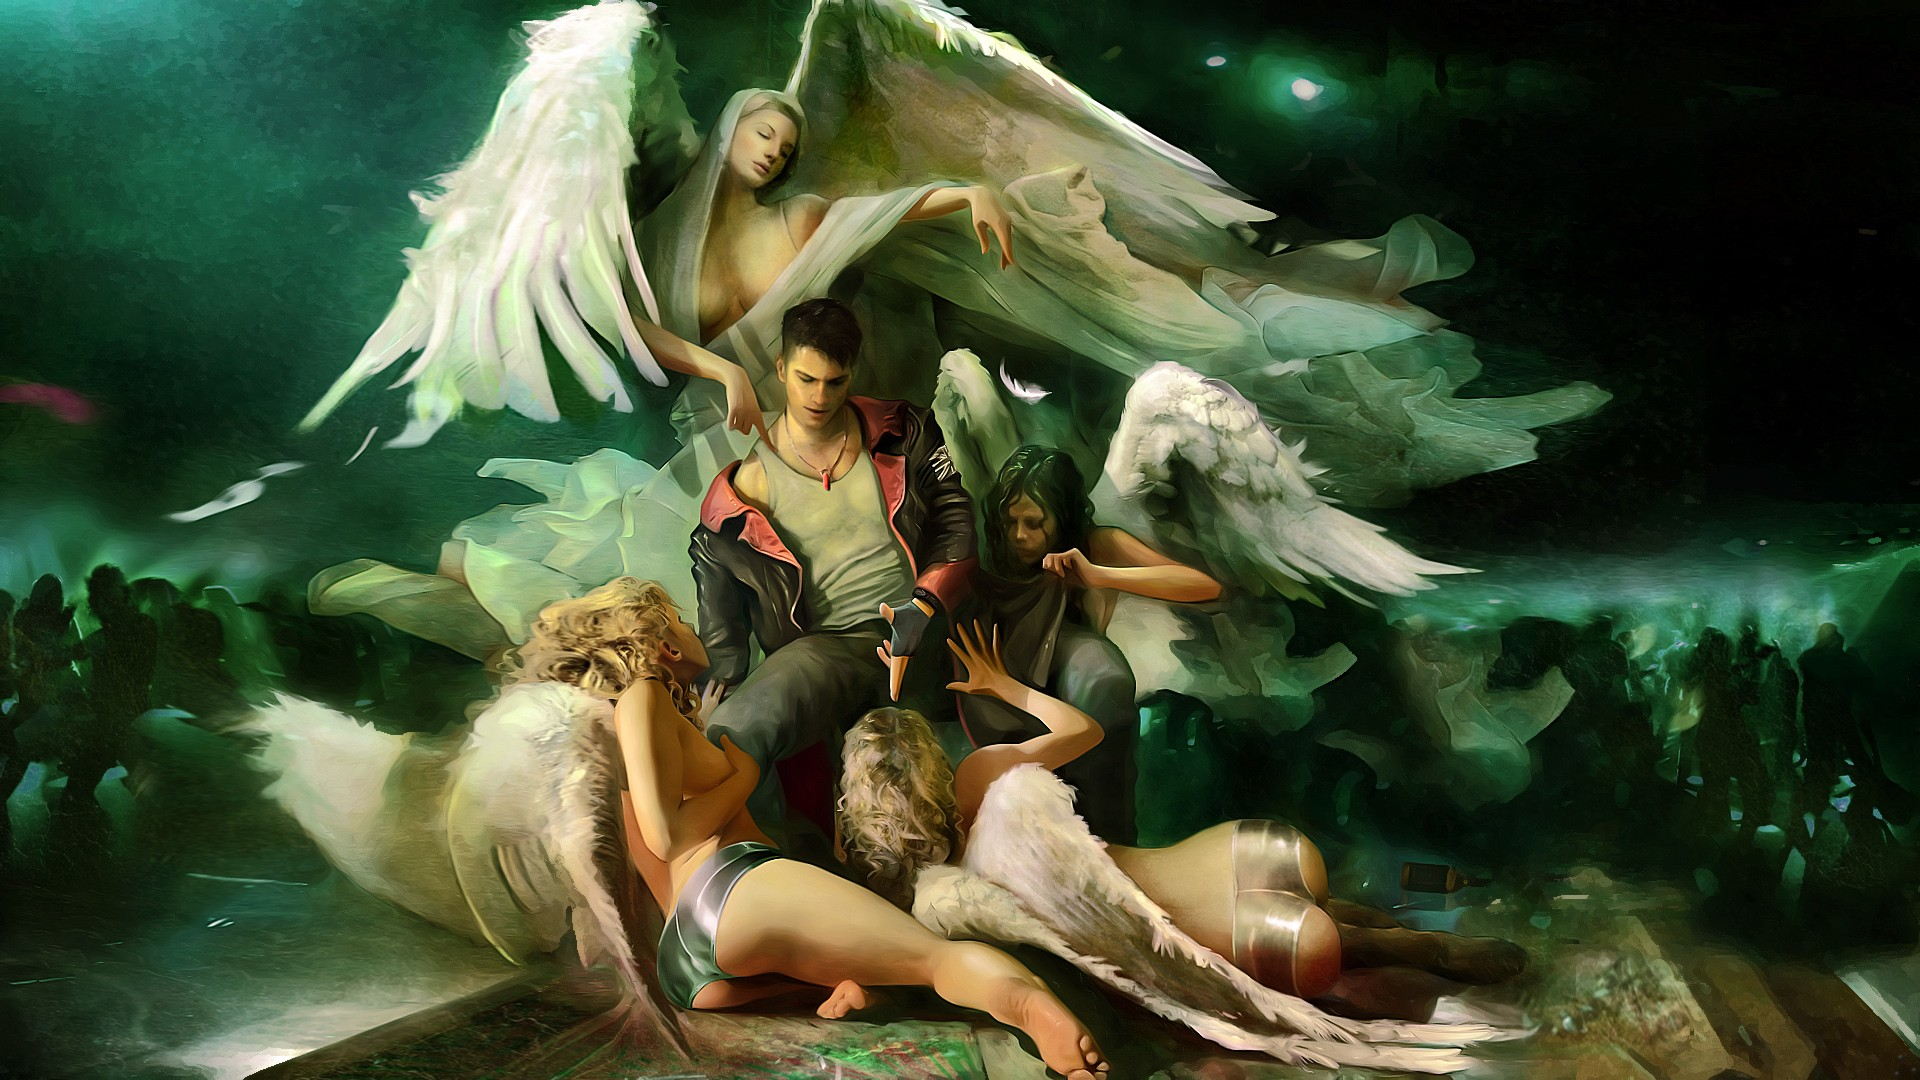 devil may cry artwork HD Wallpaper